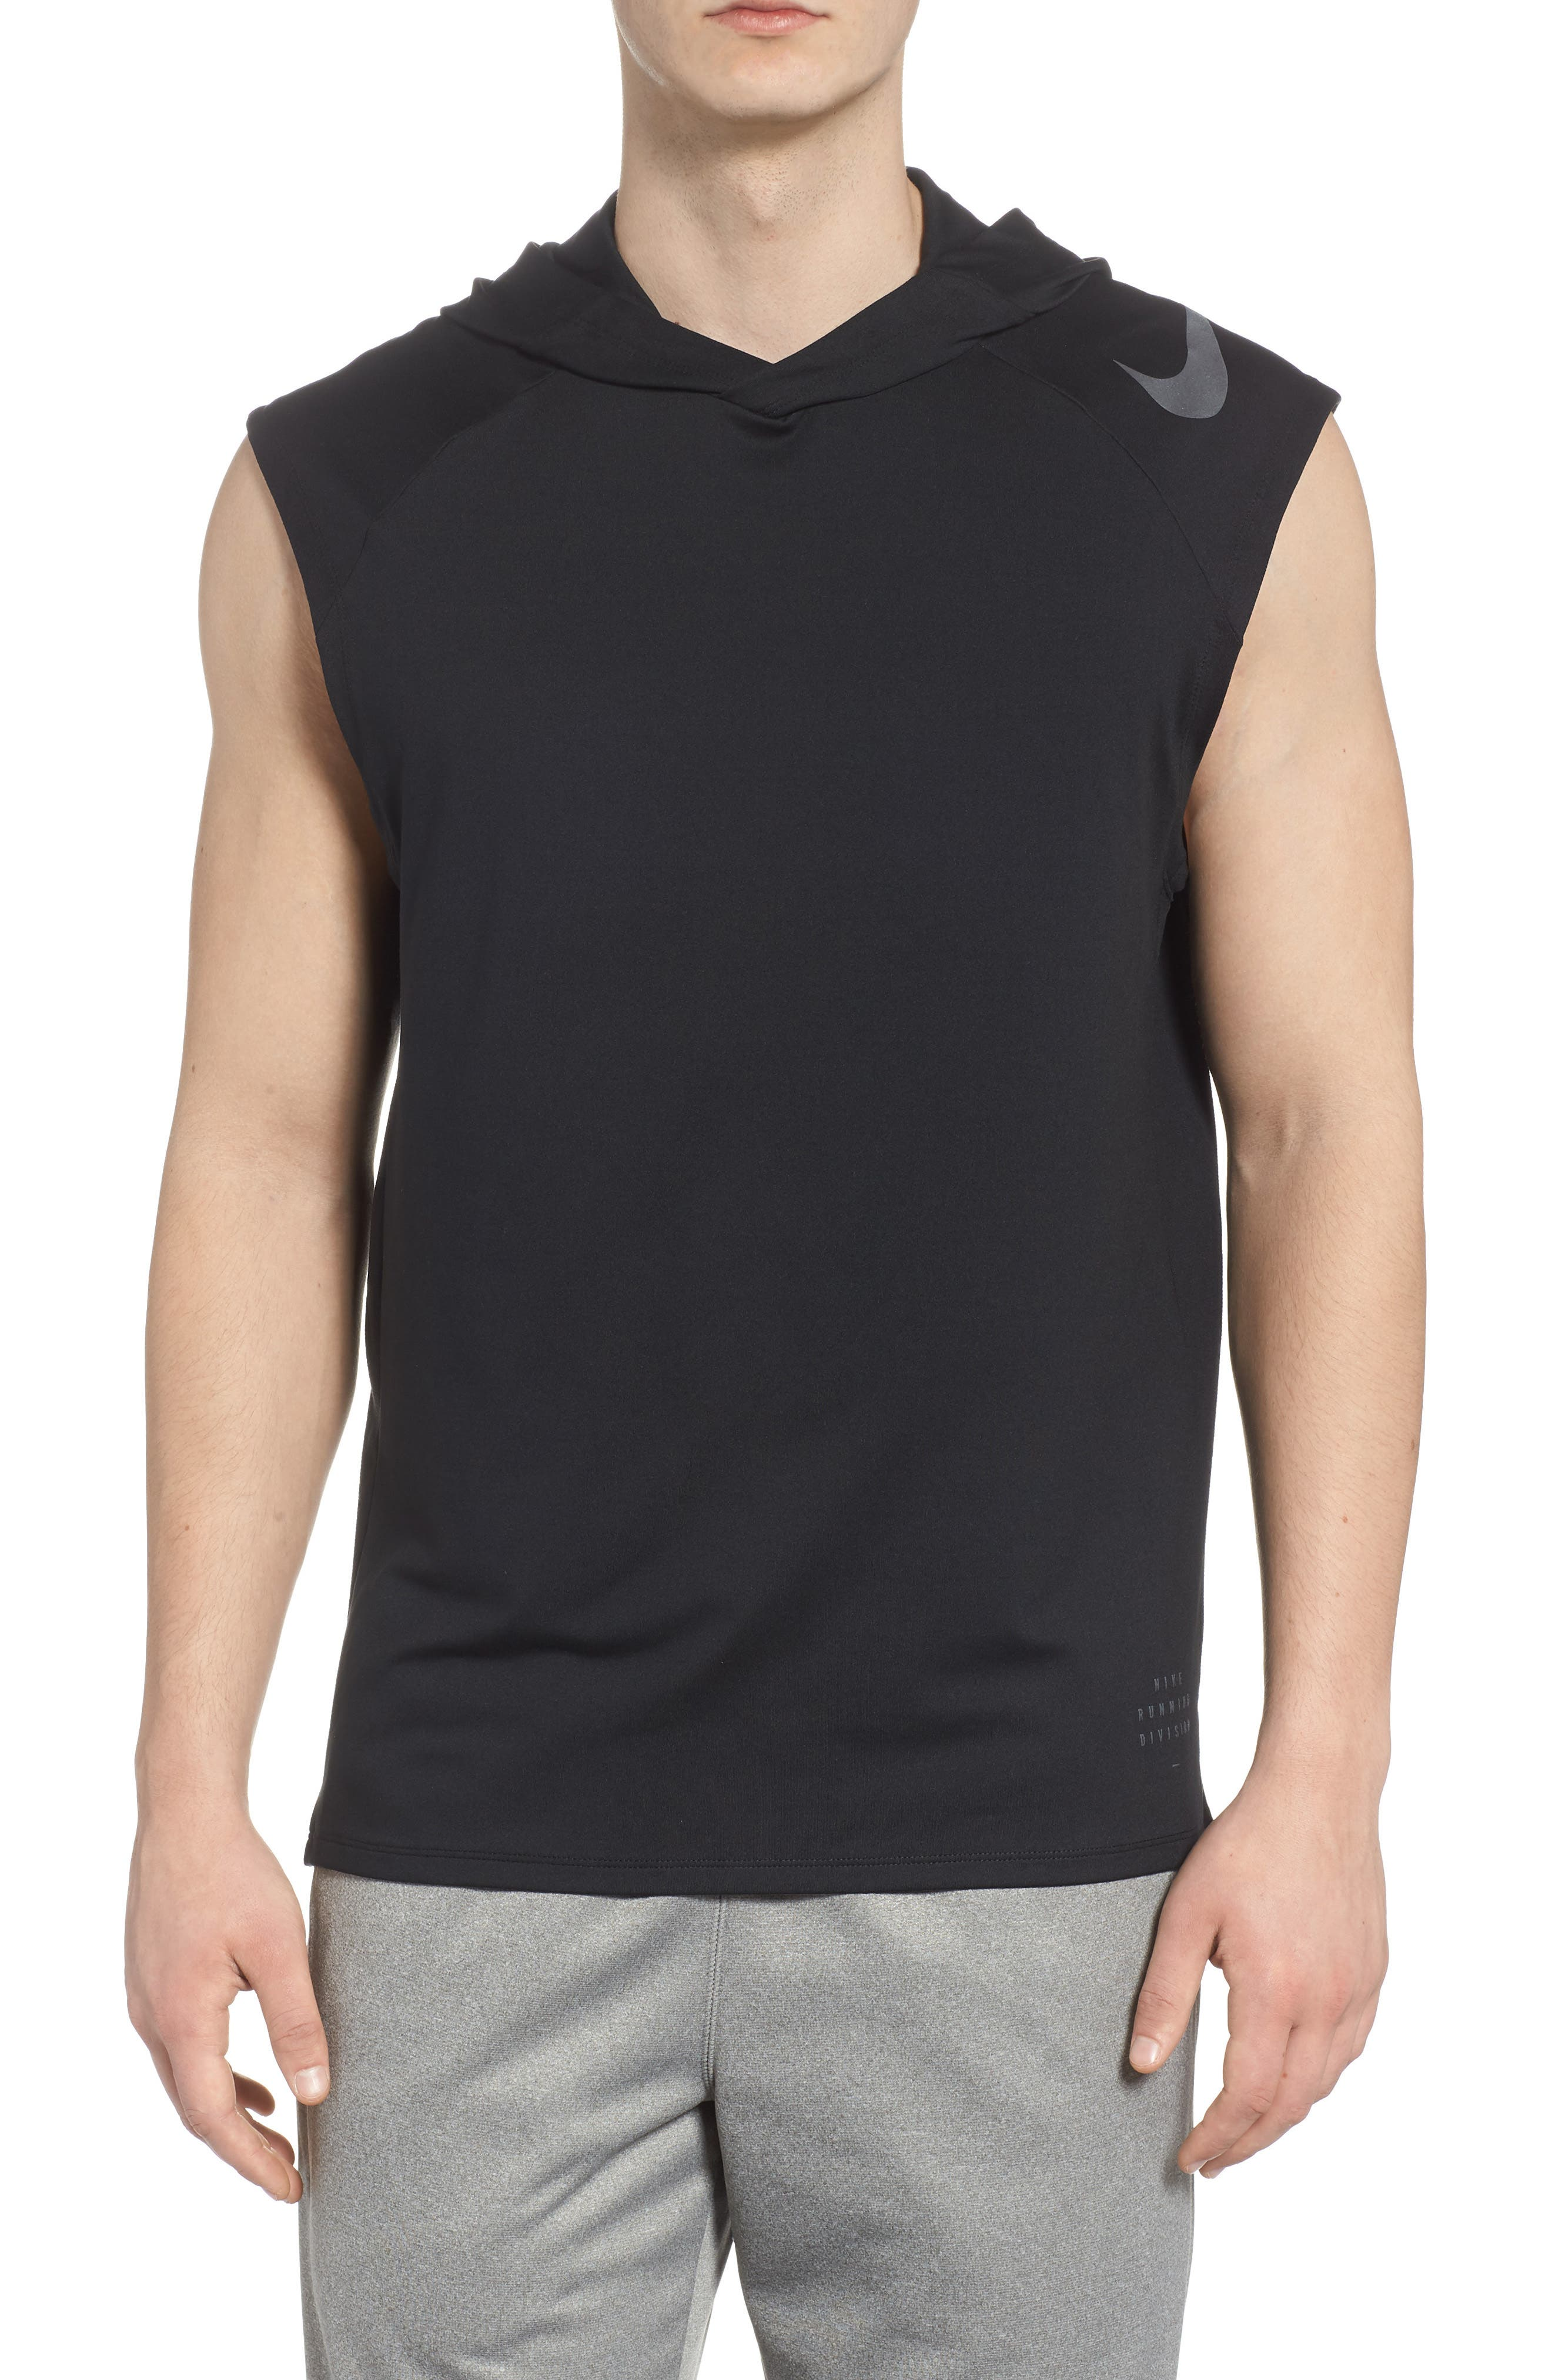 Dry Element Sleeveless Hoodie,                         Main,                         color, BLACK